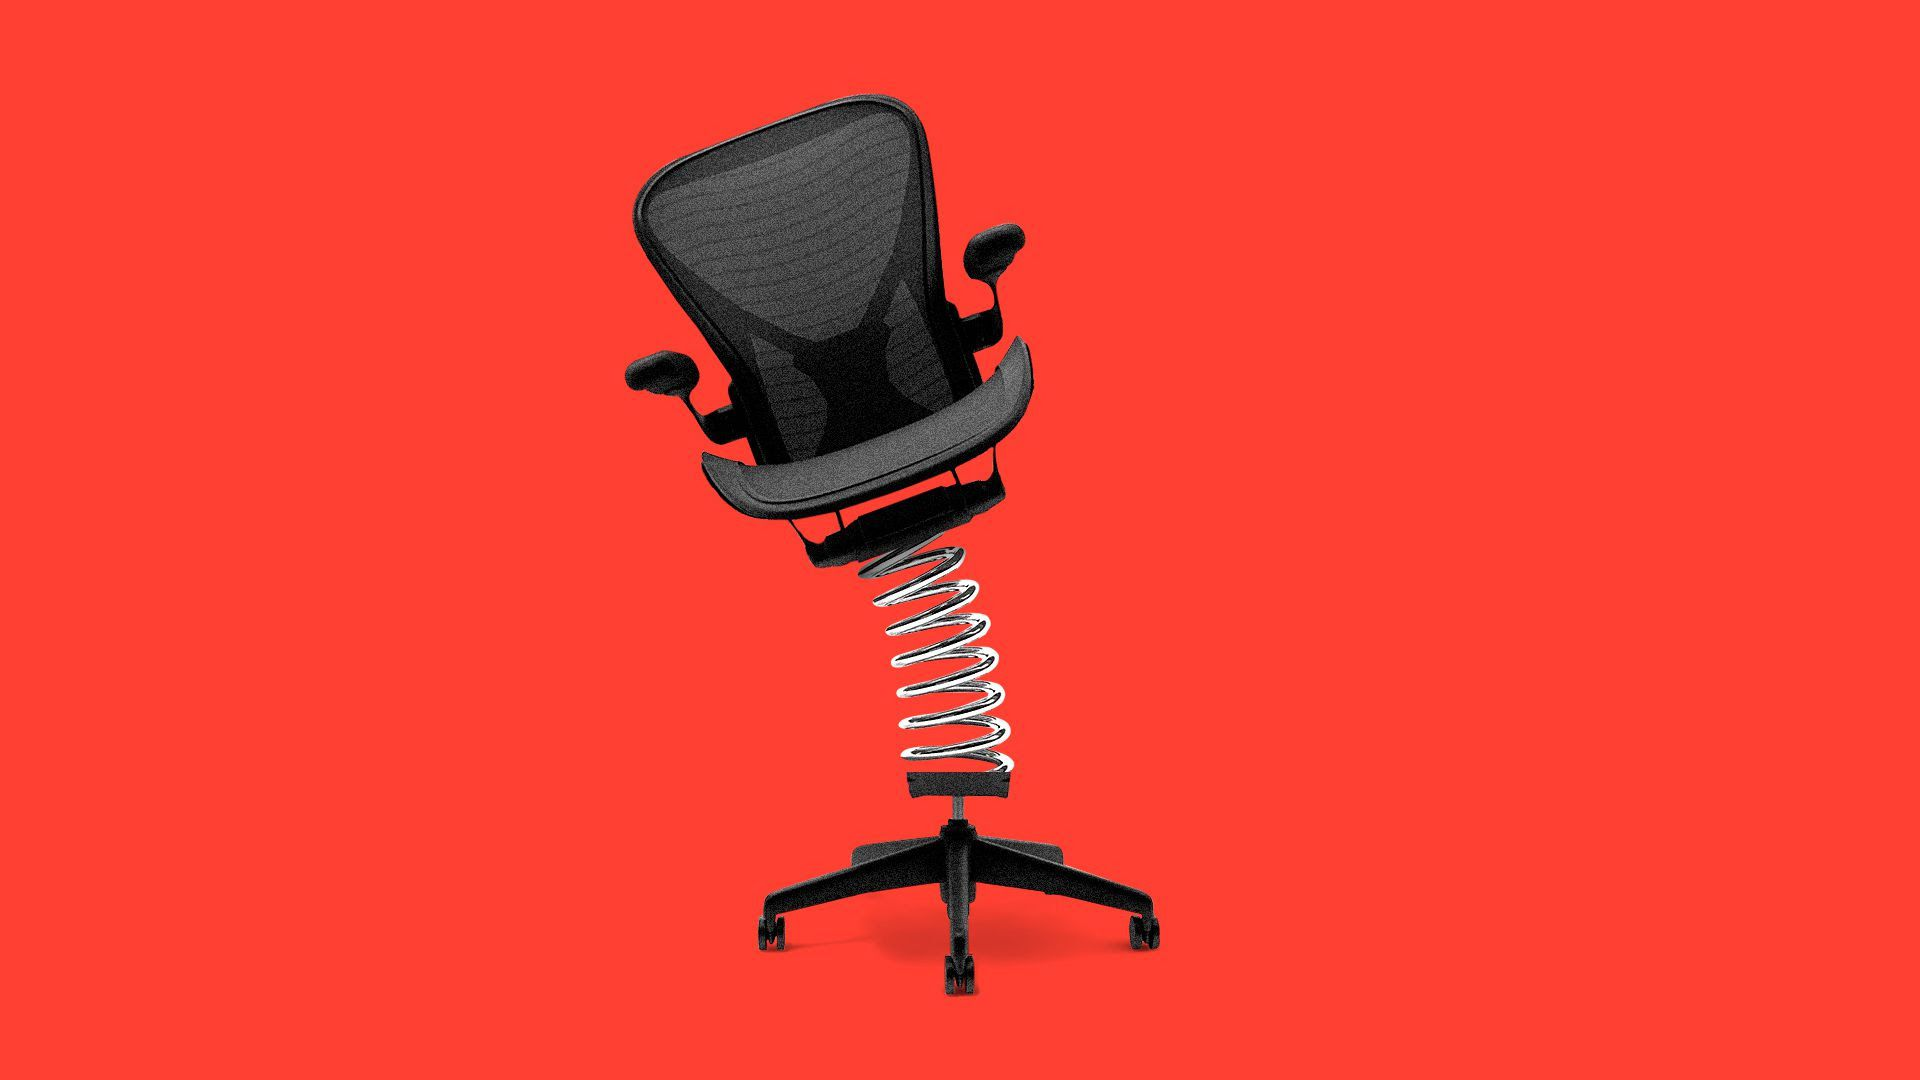 An illustration of a desk chair with springs on the seat in front of a red background.